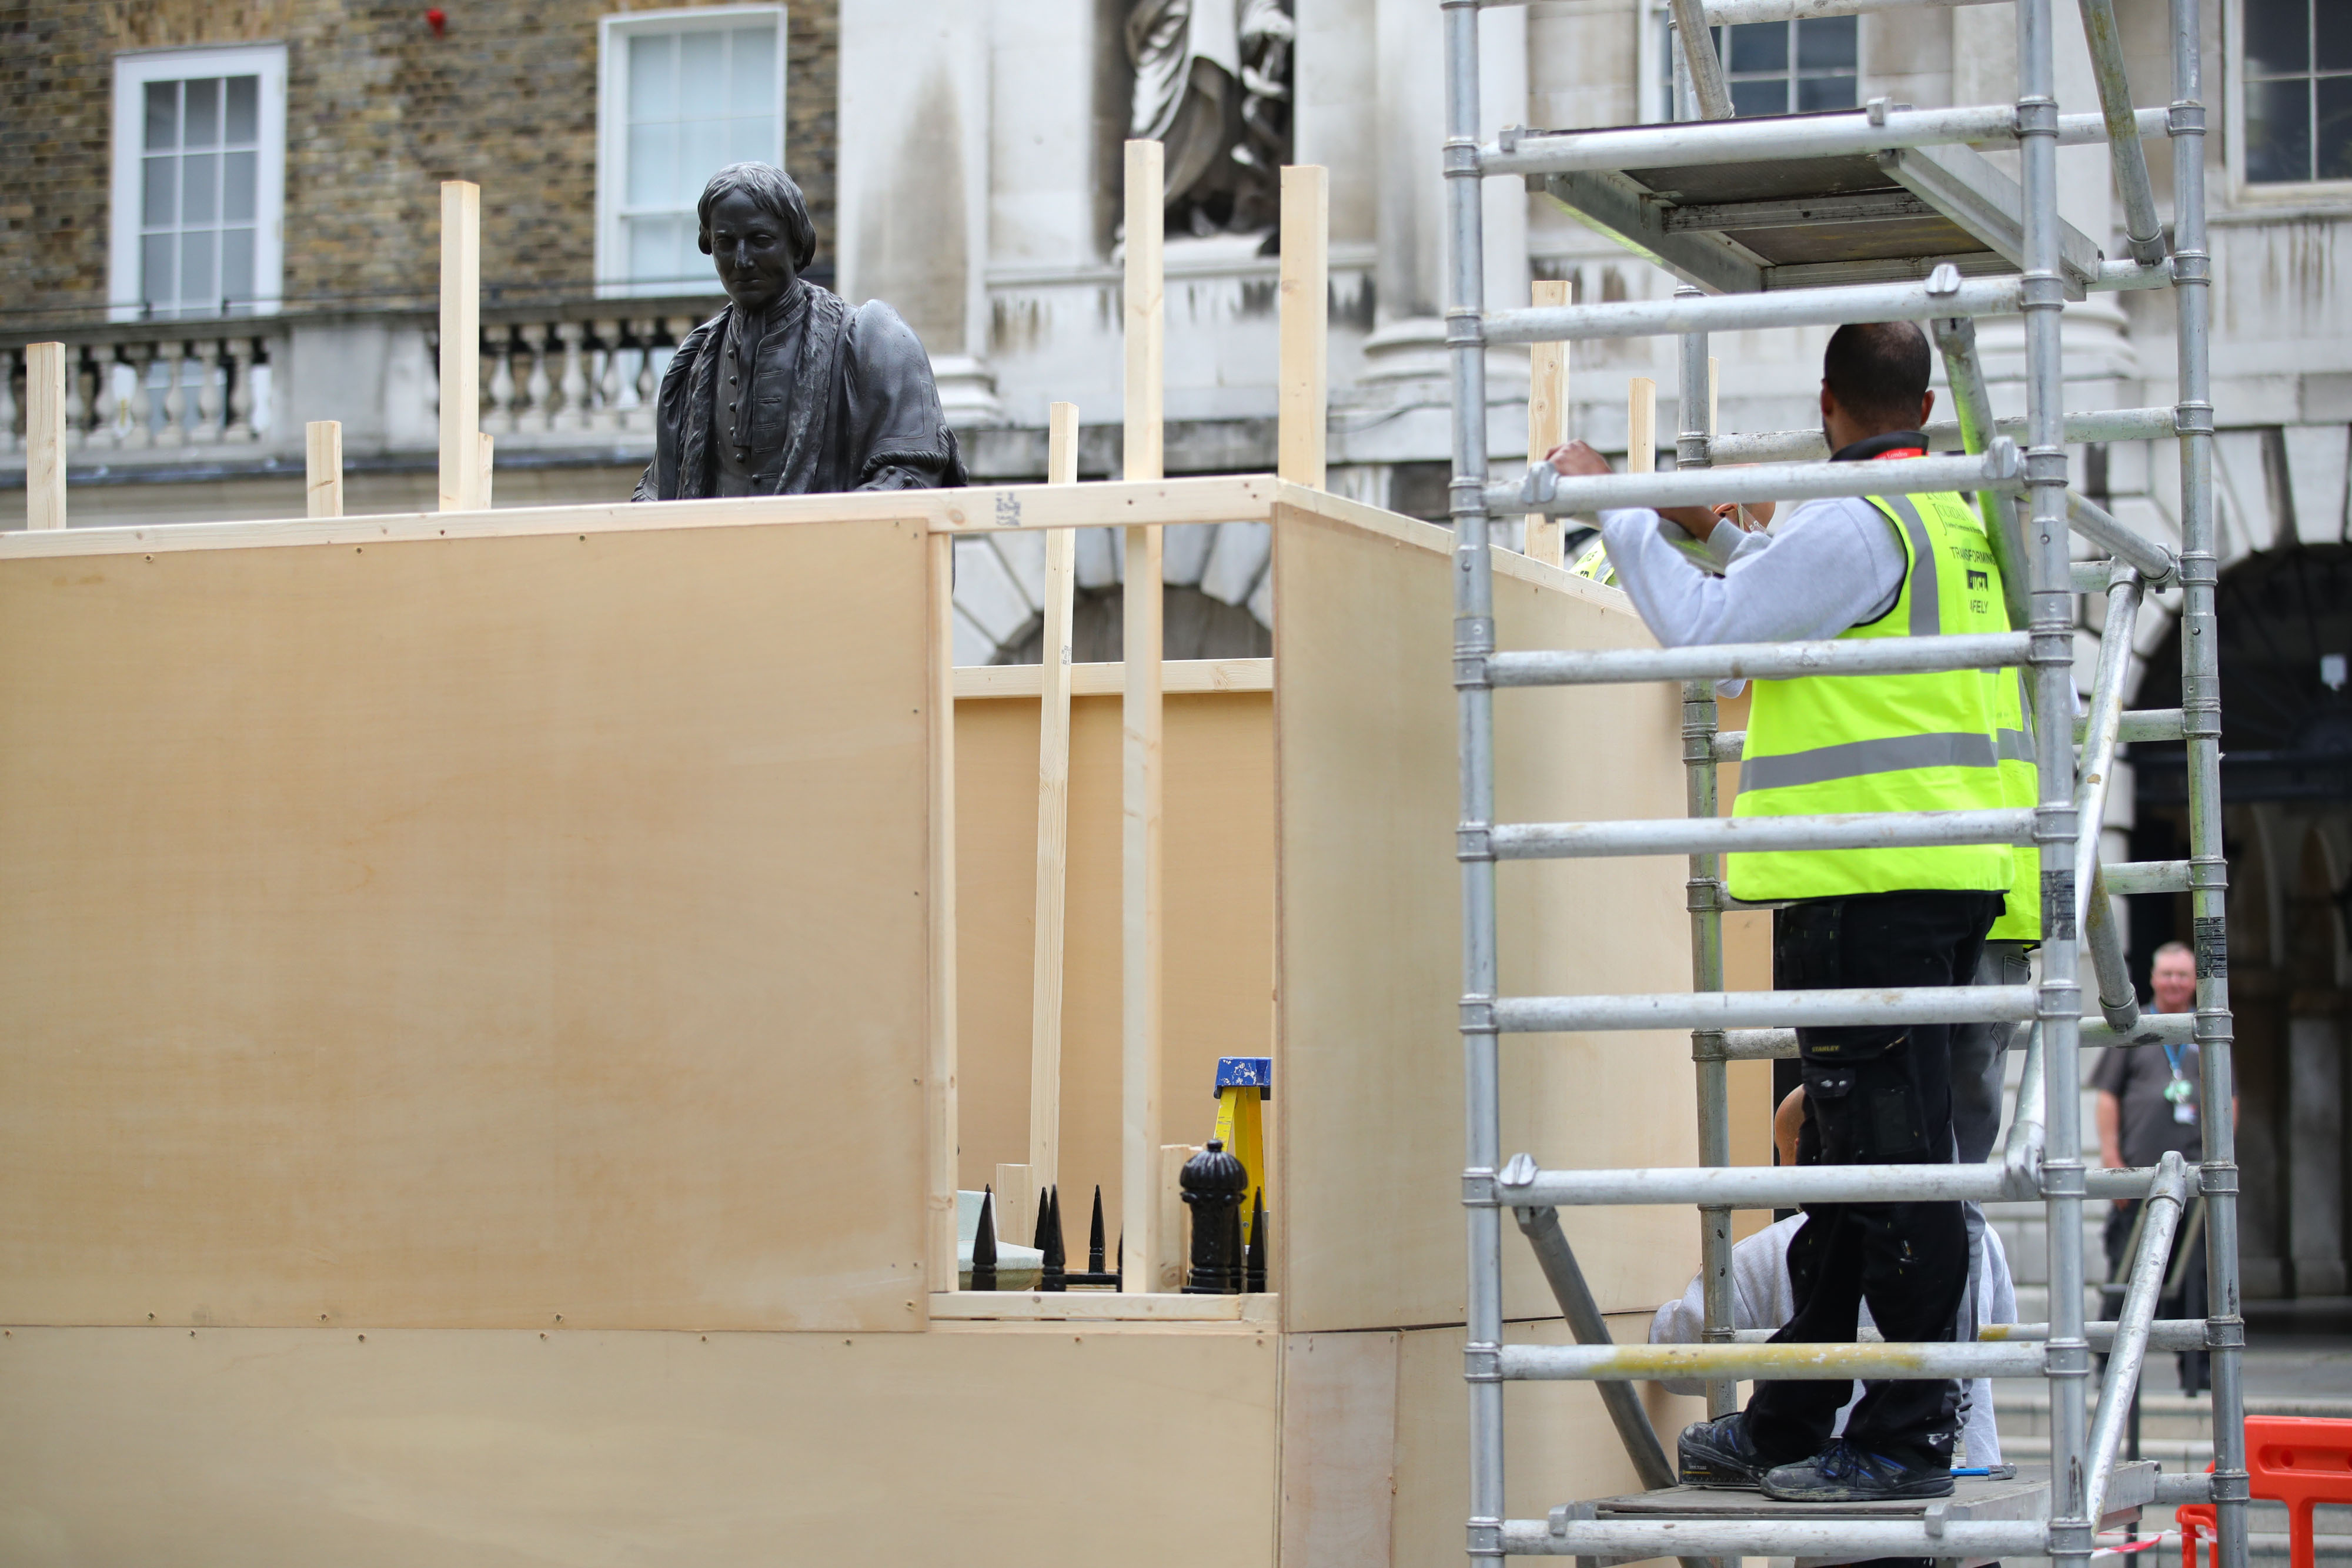 Boards being put up around the statue of Thomas Guy at Guy's hospital in London, following a raft of Black Lives Matter protests that took place across the UK over the weekend. The protests were sparked by the death of George Floyd, who was killed on May 25 while in police custody in the US city of Minneapolis.